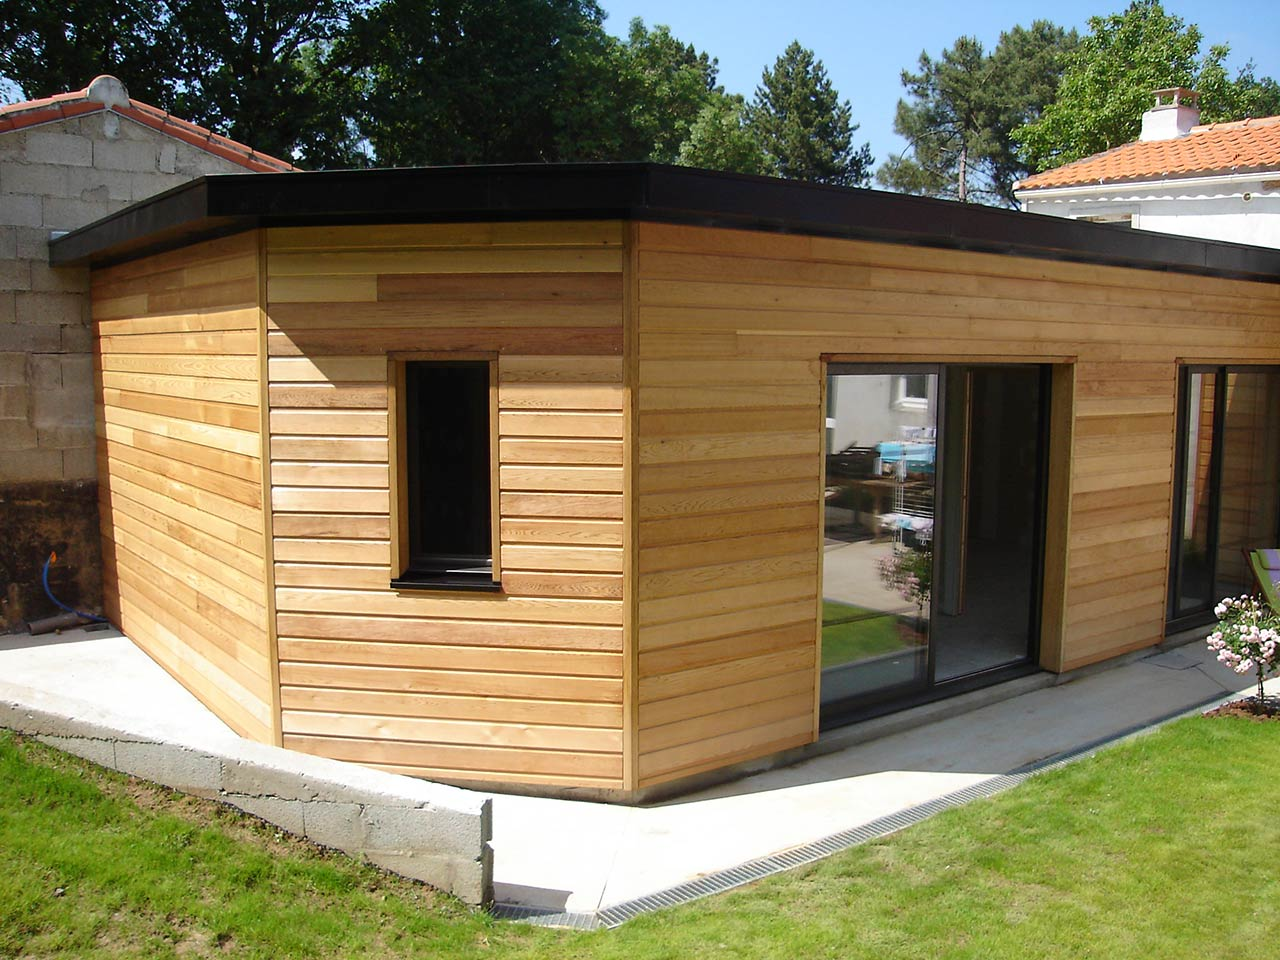 Extension habitation extension habitation bardage with extension habitation excellent for Habitation en bois